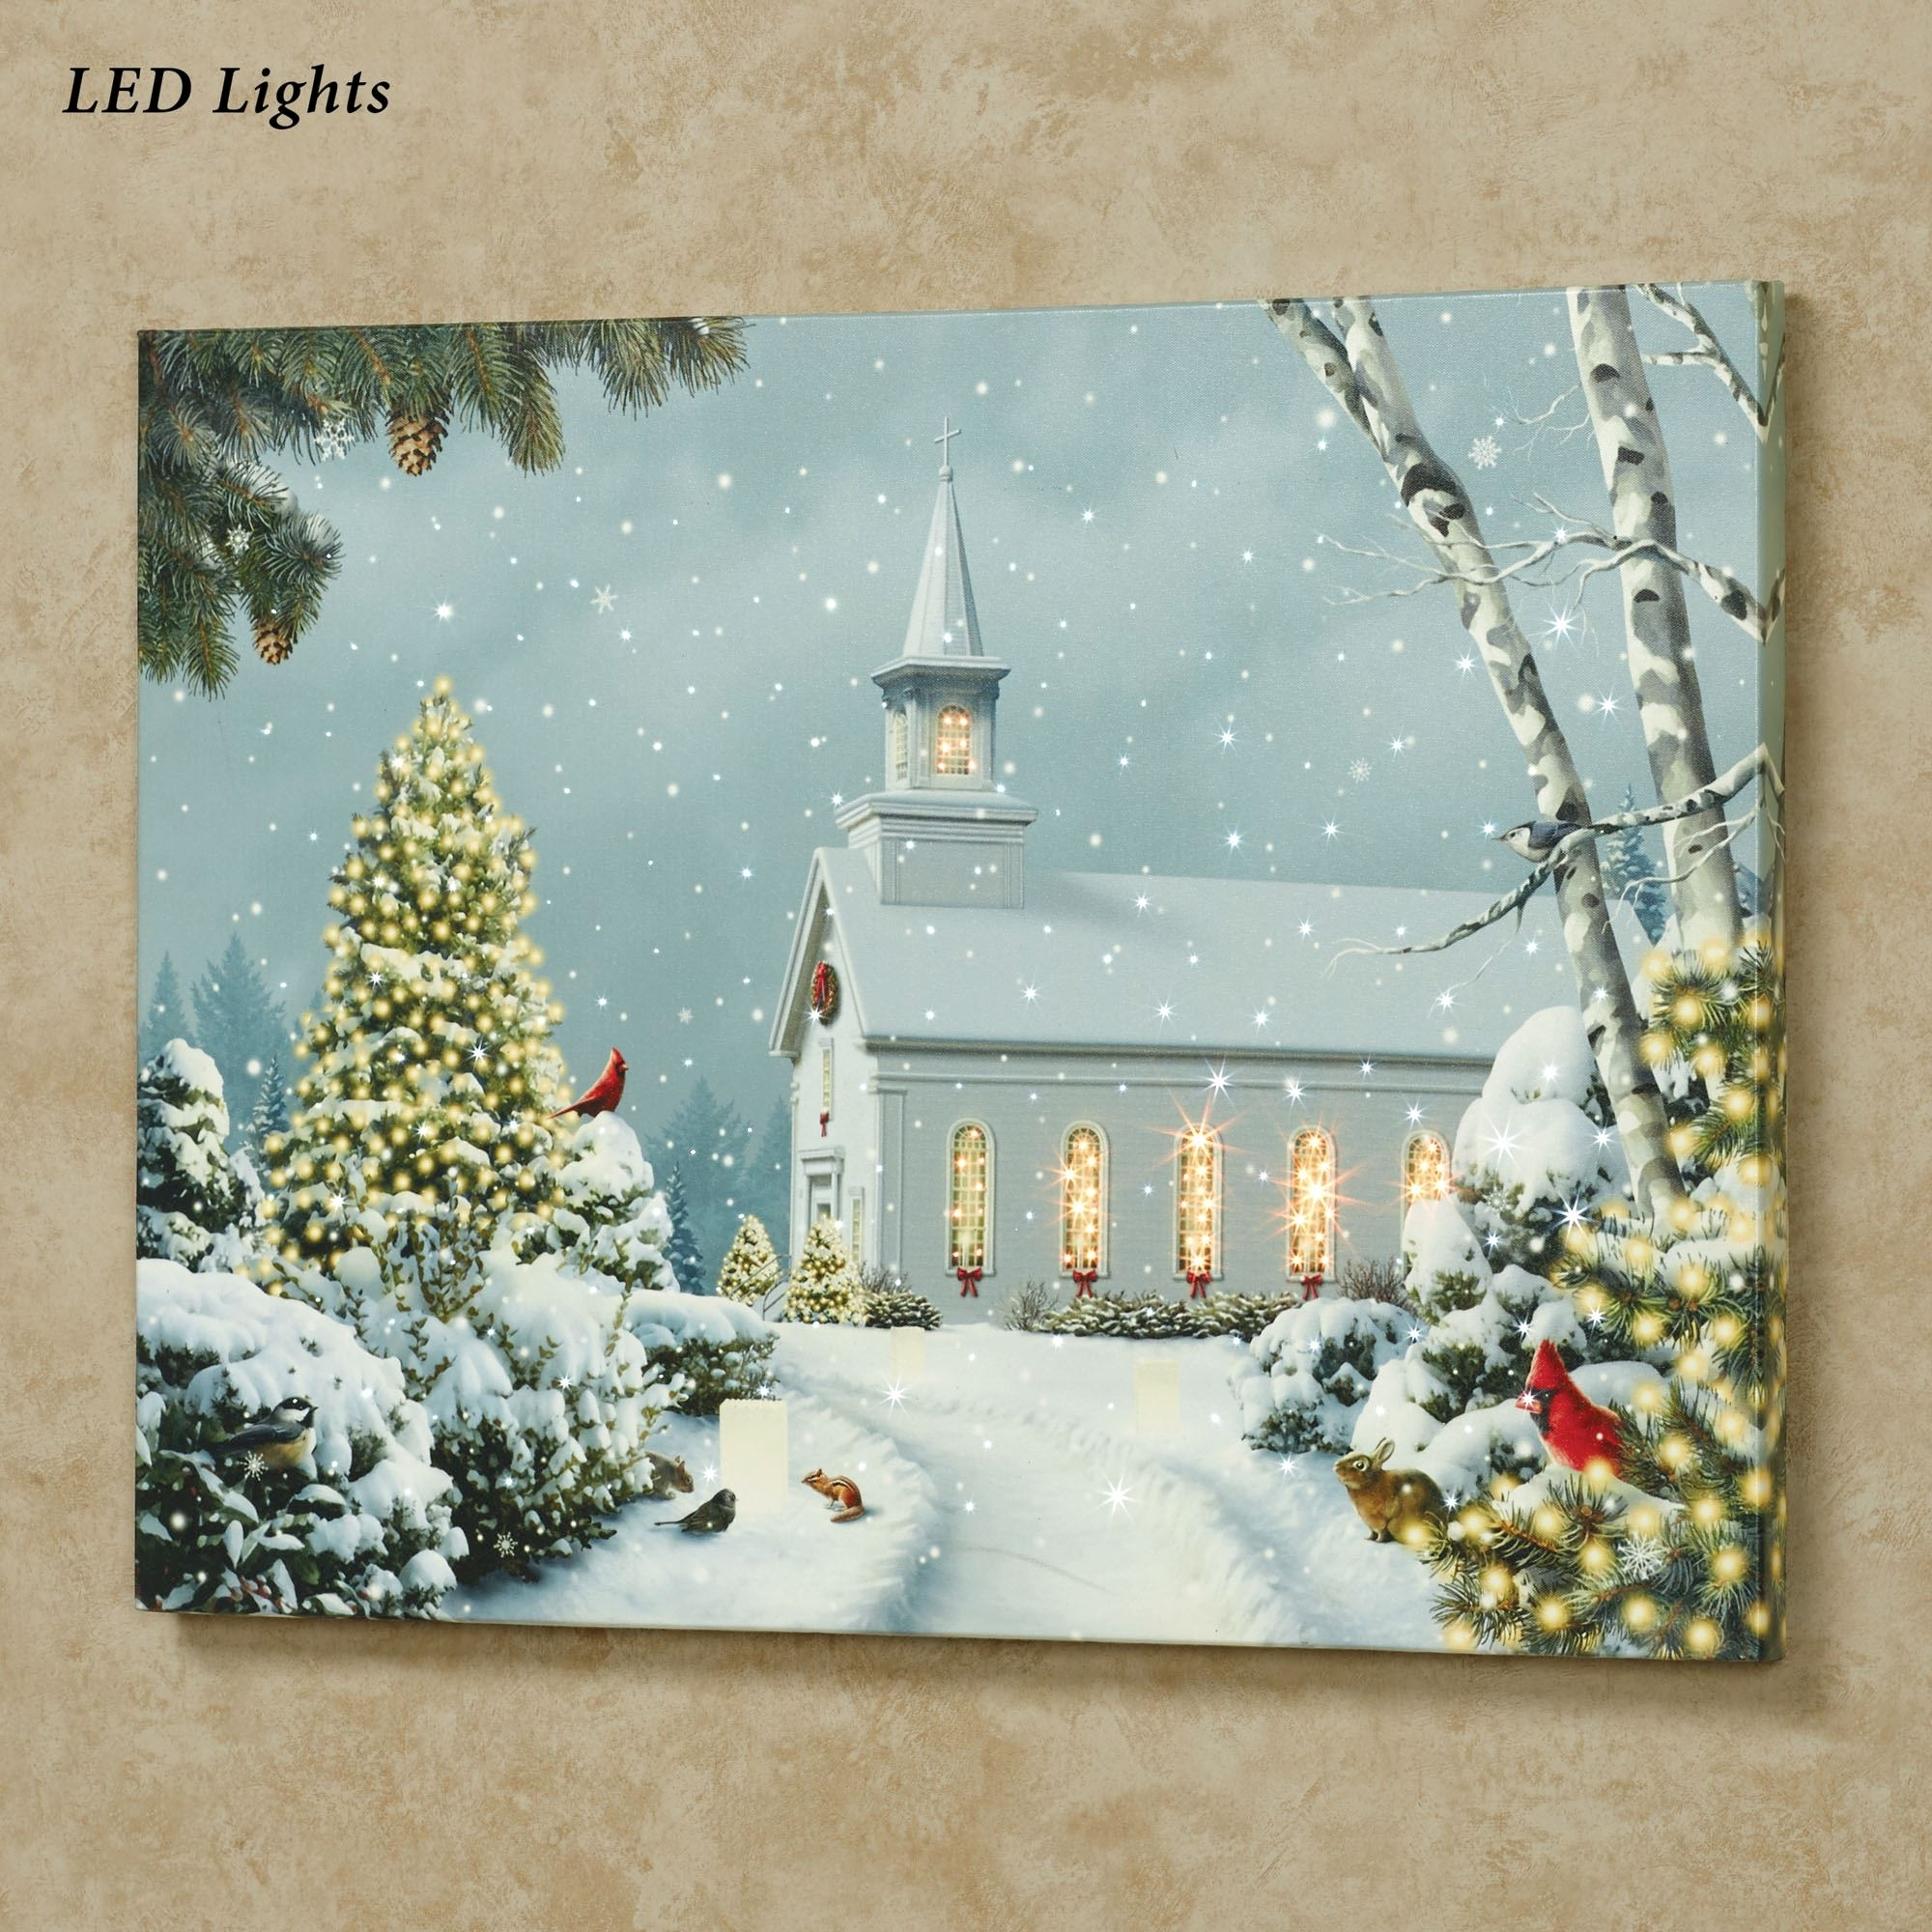 Led Lighted Wall Canvas – Oregonuforeview Throughout Most Recent Lighted Canvas Wall Art (View 13 of 15)